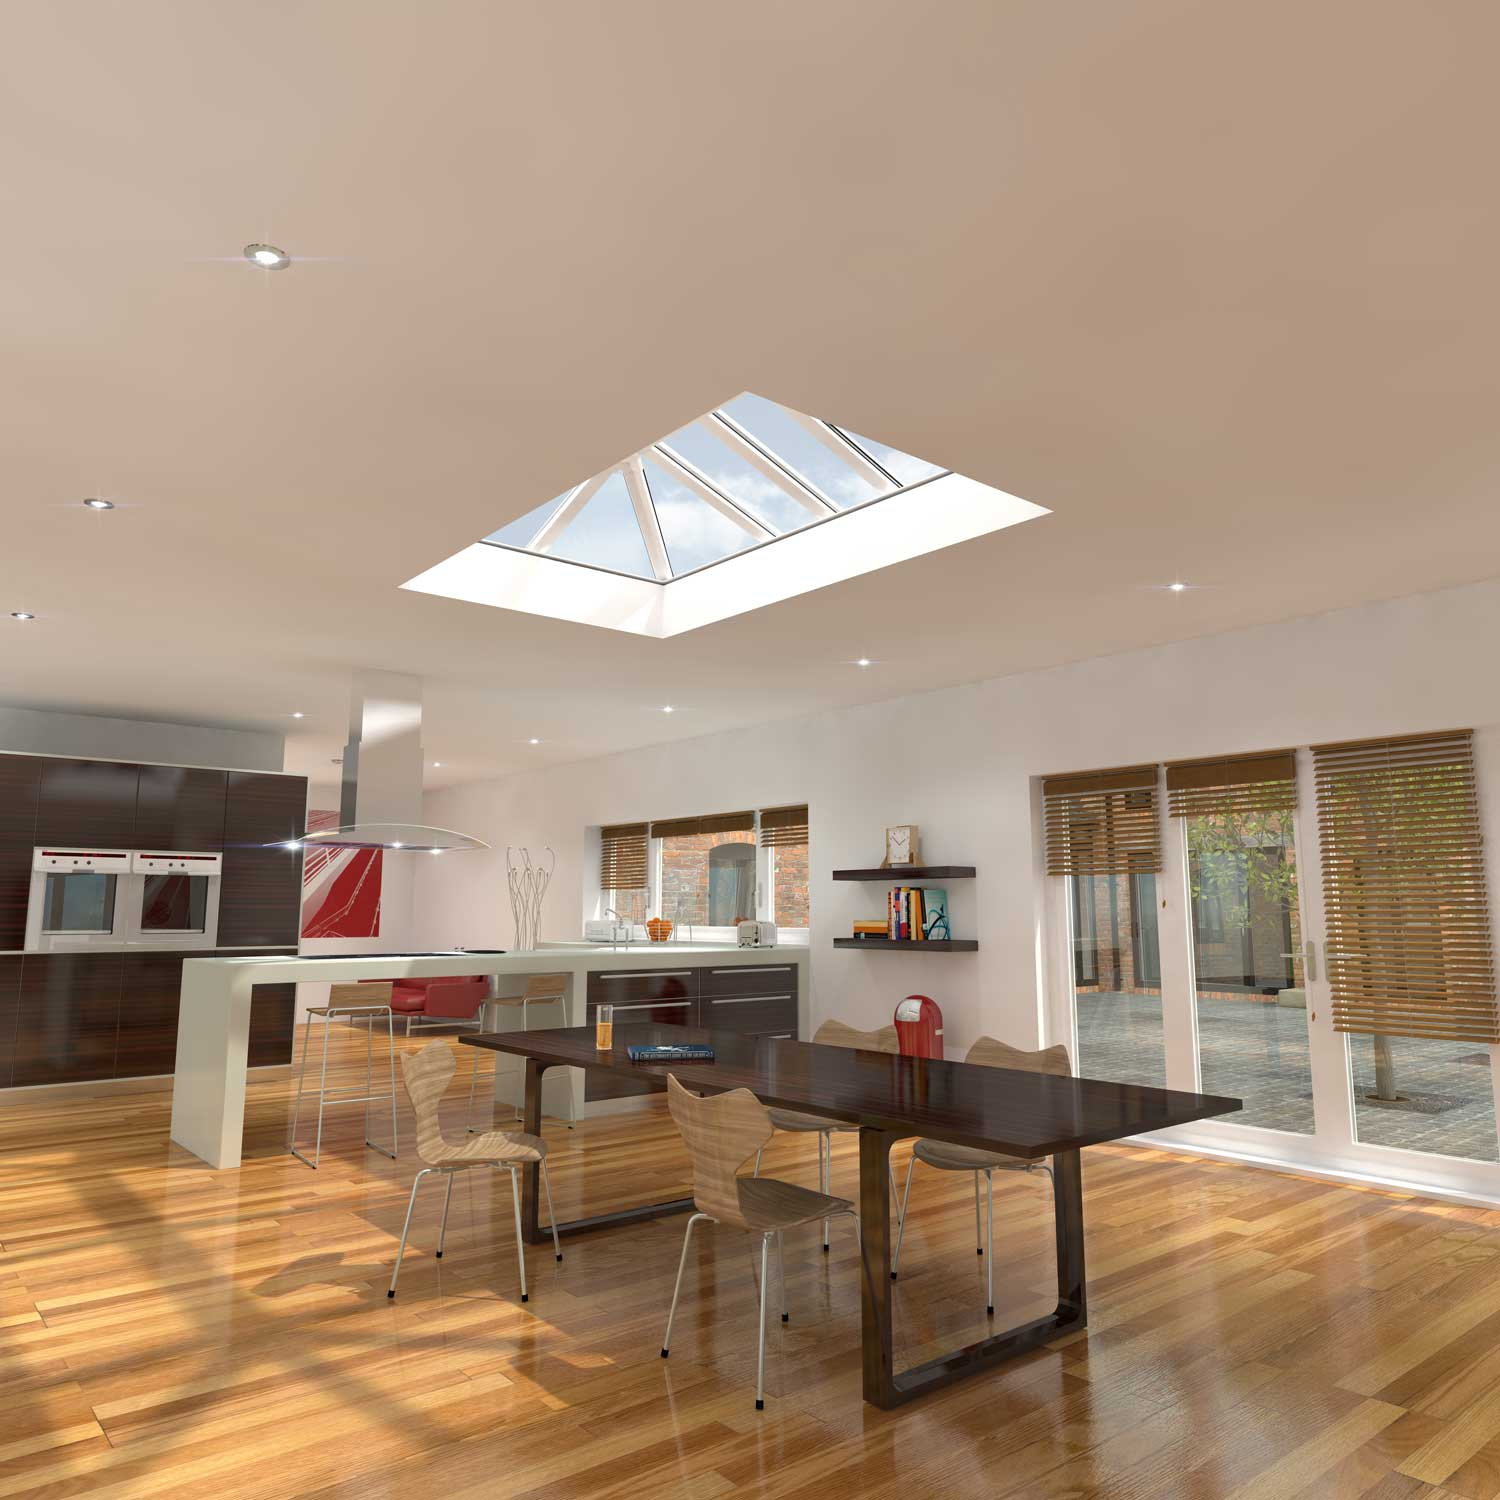 Roof Replacement Prices Berkshire